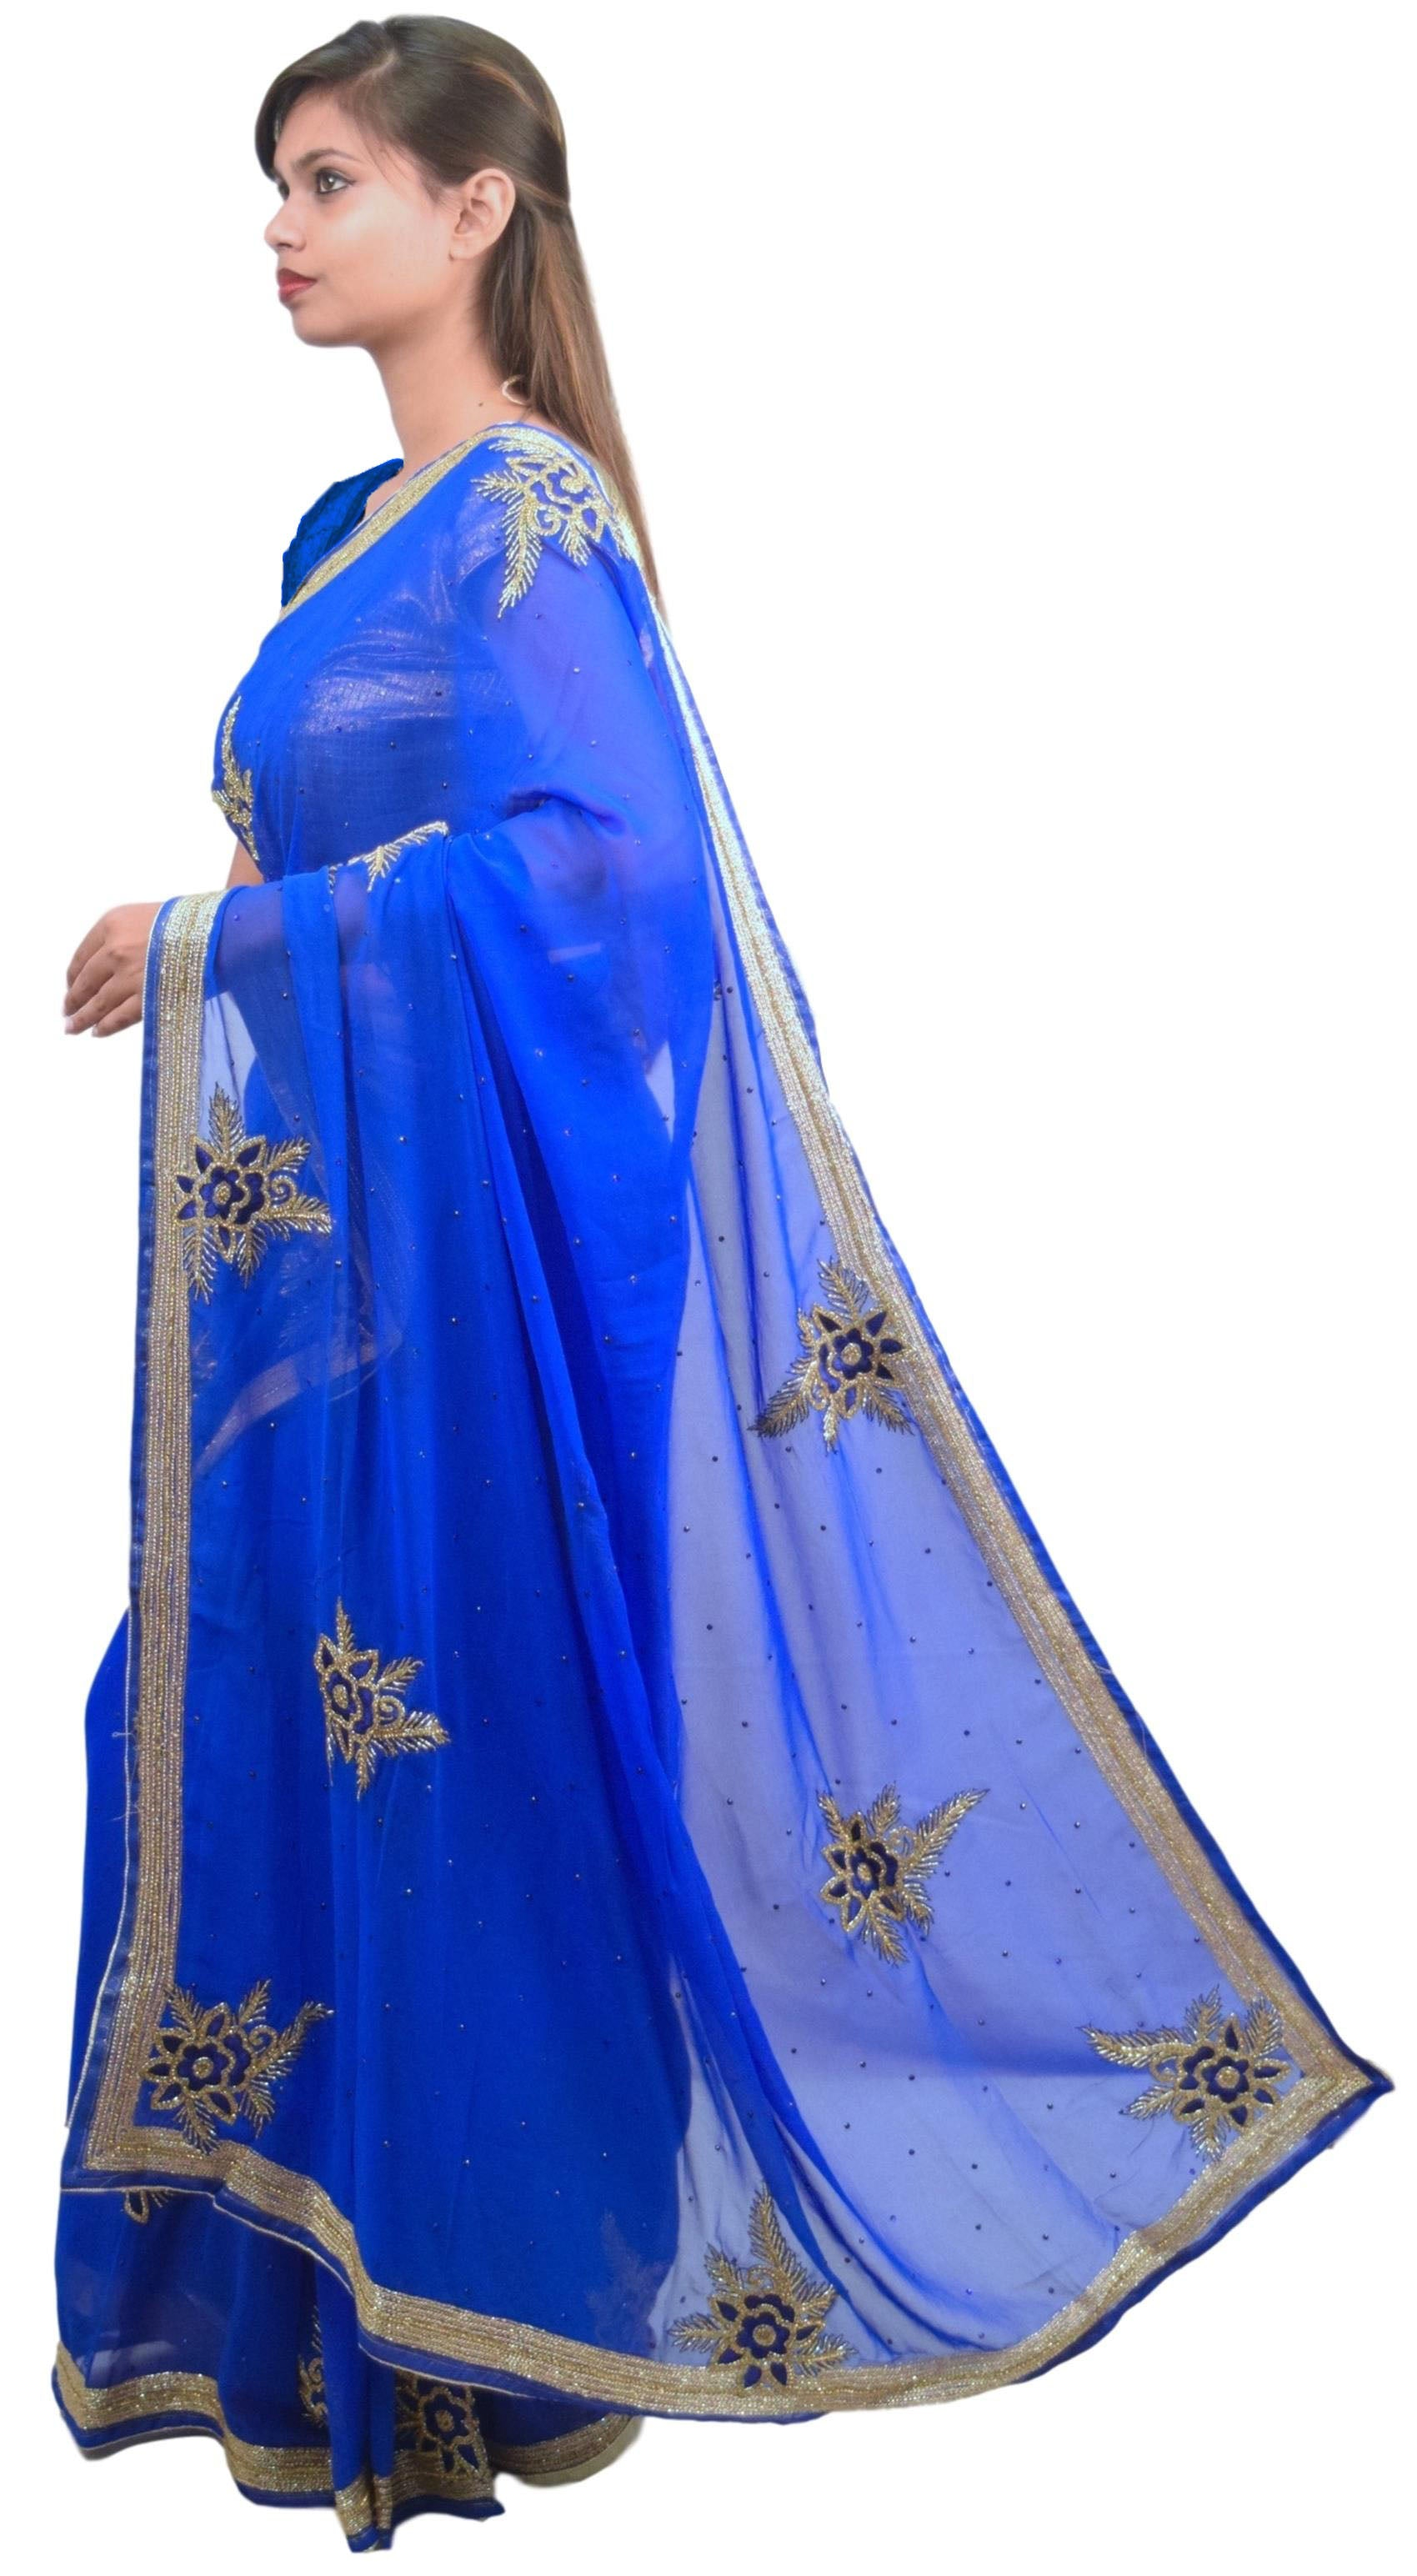 Blue Designer Wedding Partywear Georgette Hand Embroidery Cutdana Zari Thread Stone Work Kolkata Saree Sari E141